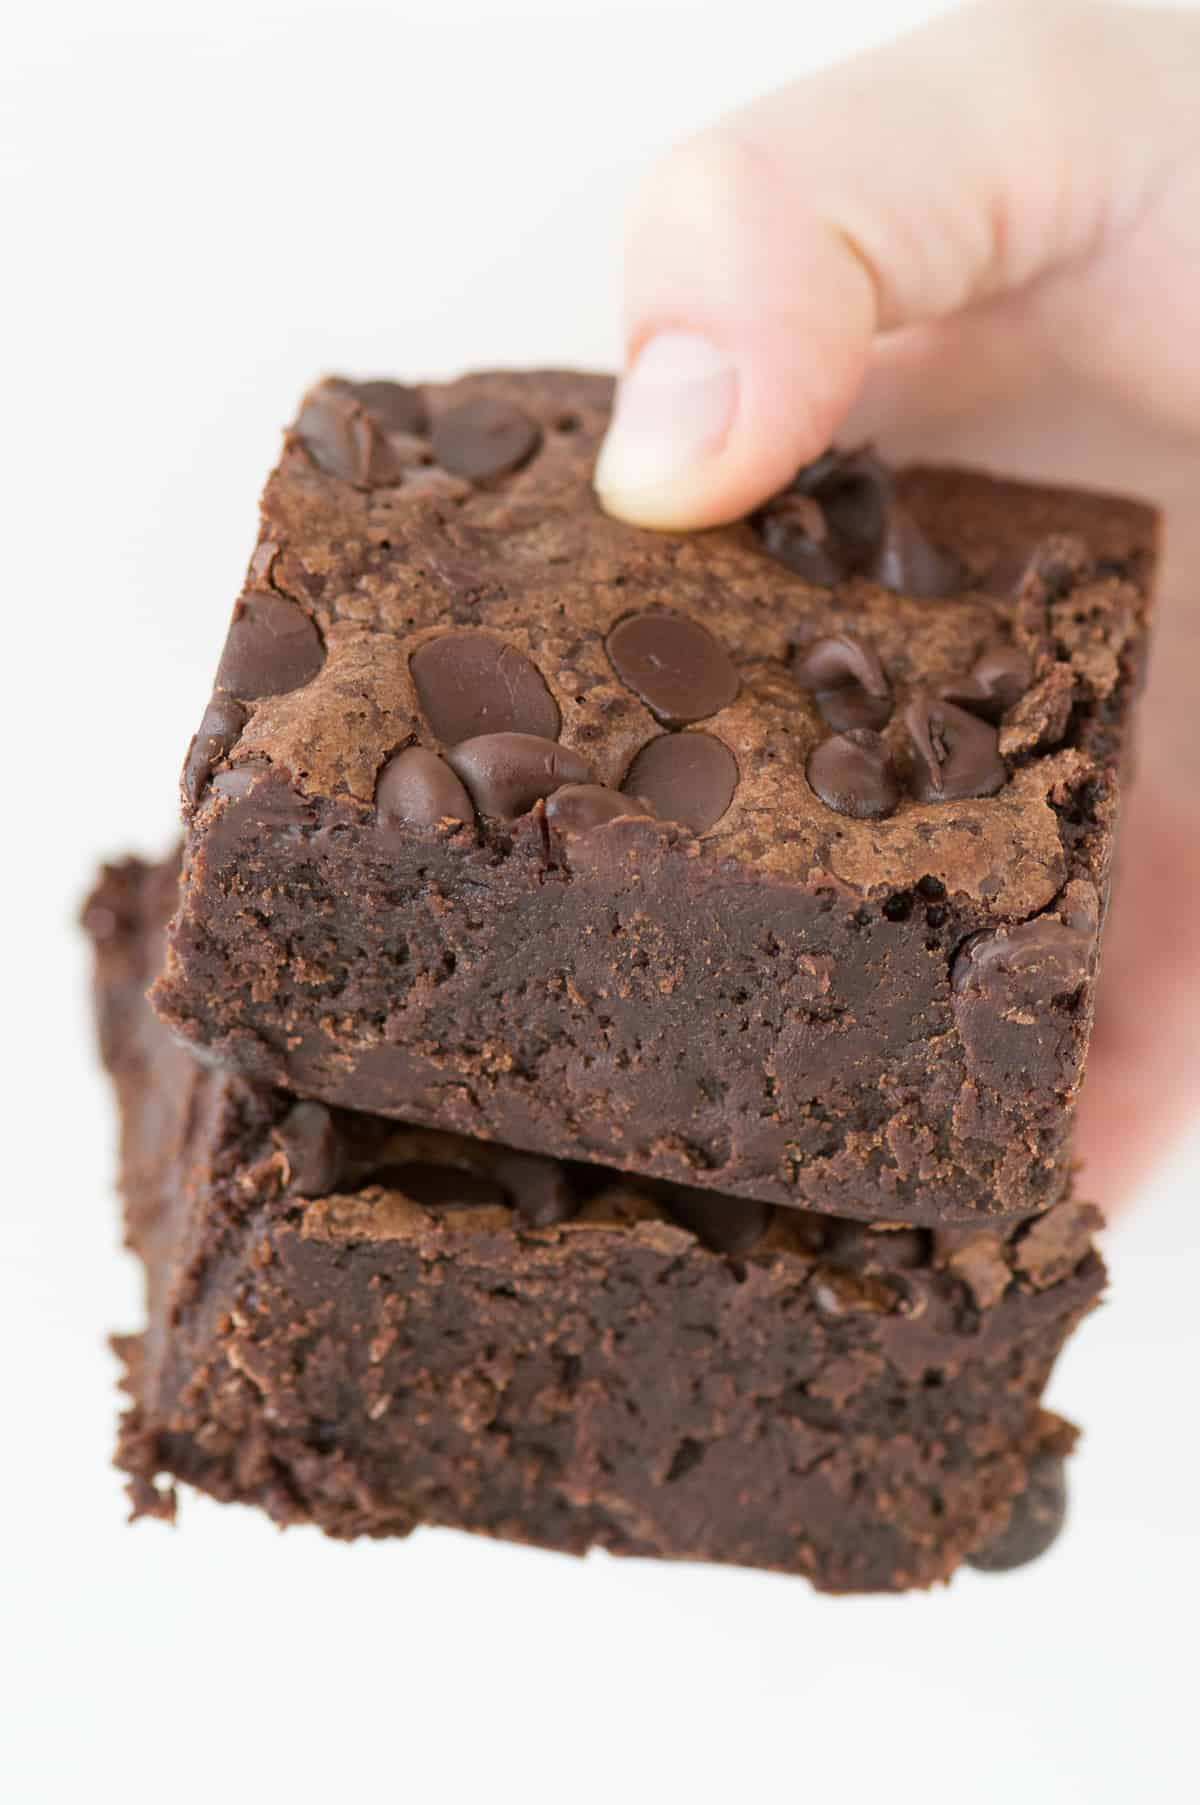 These SUPER FUDGY BROWNIES are a family favorite and loaded with 3 kinds of chocolate. Not your average brownies, these are dense and super chocolatey!